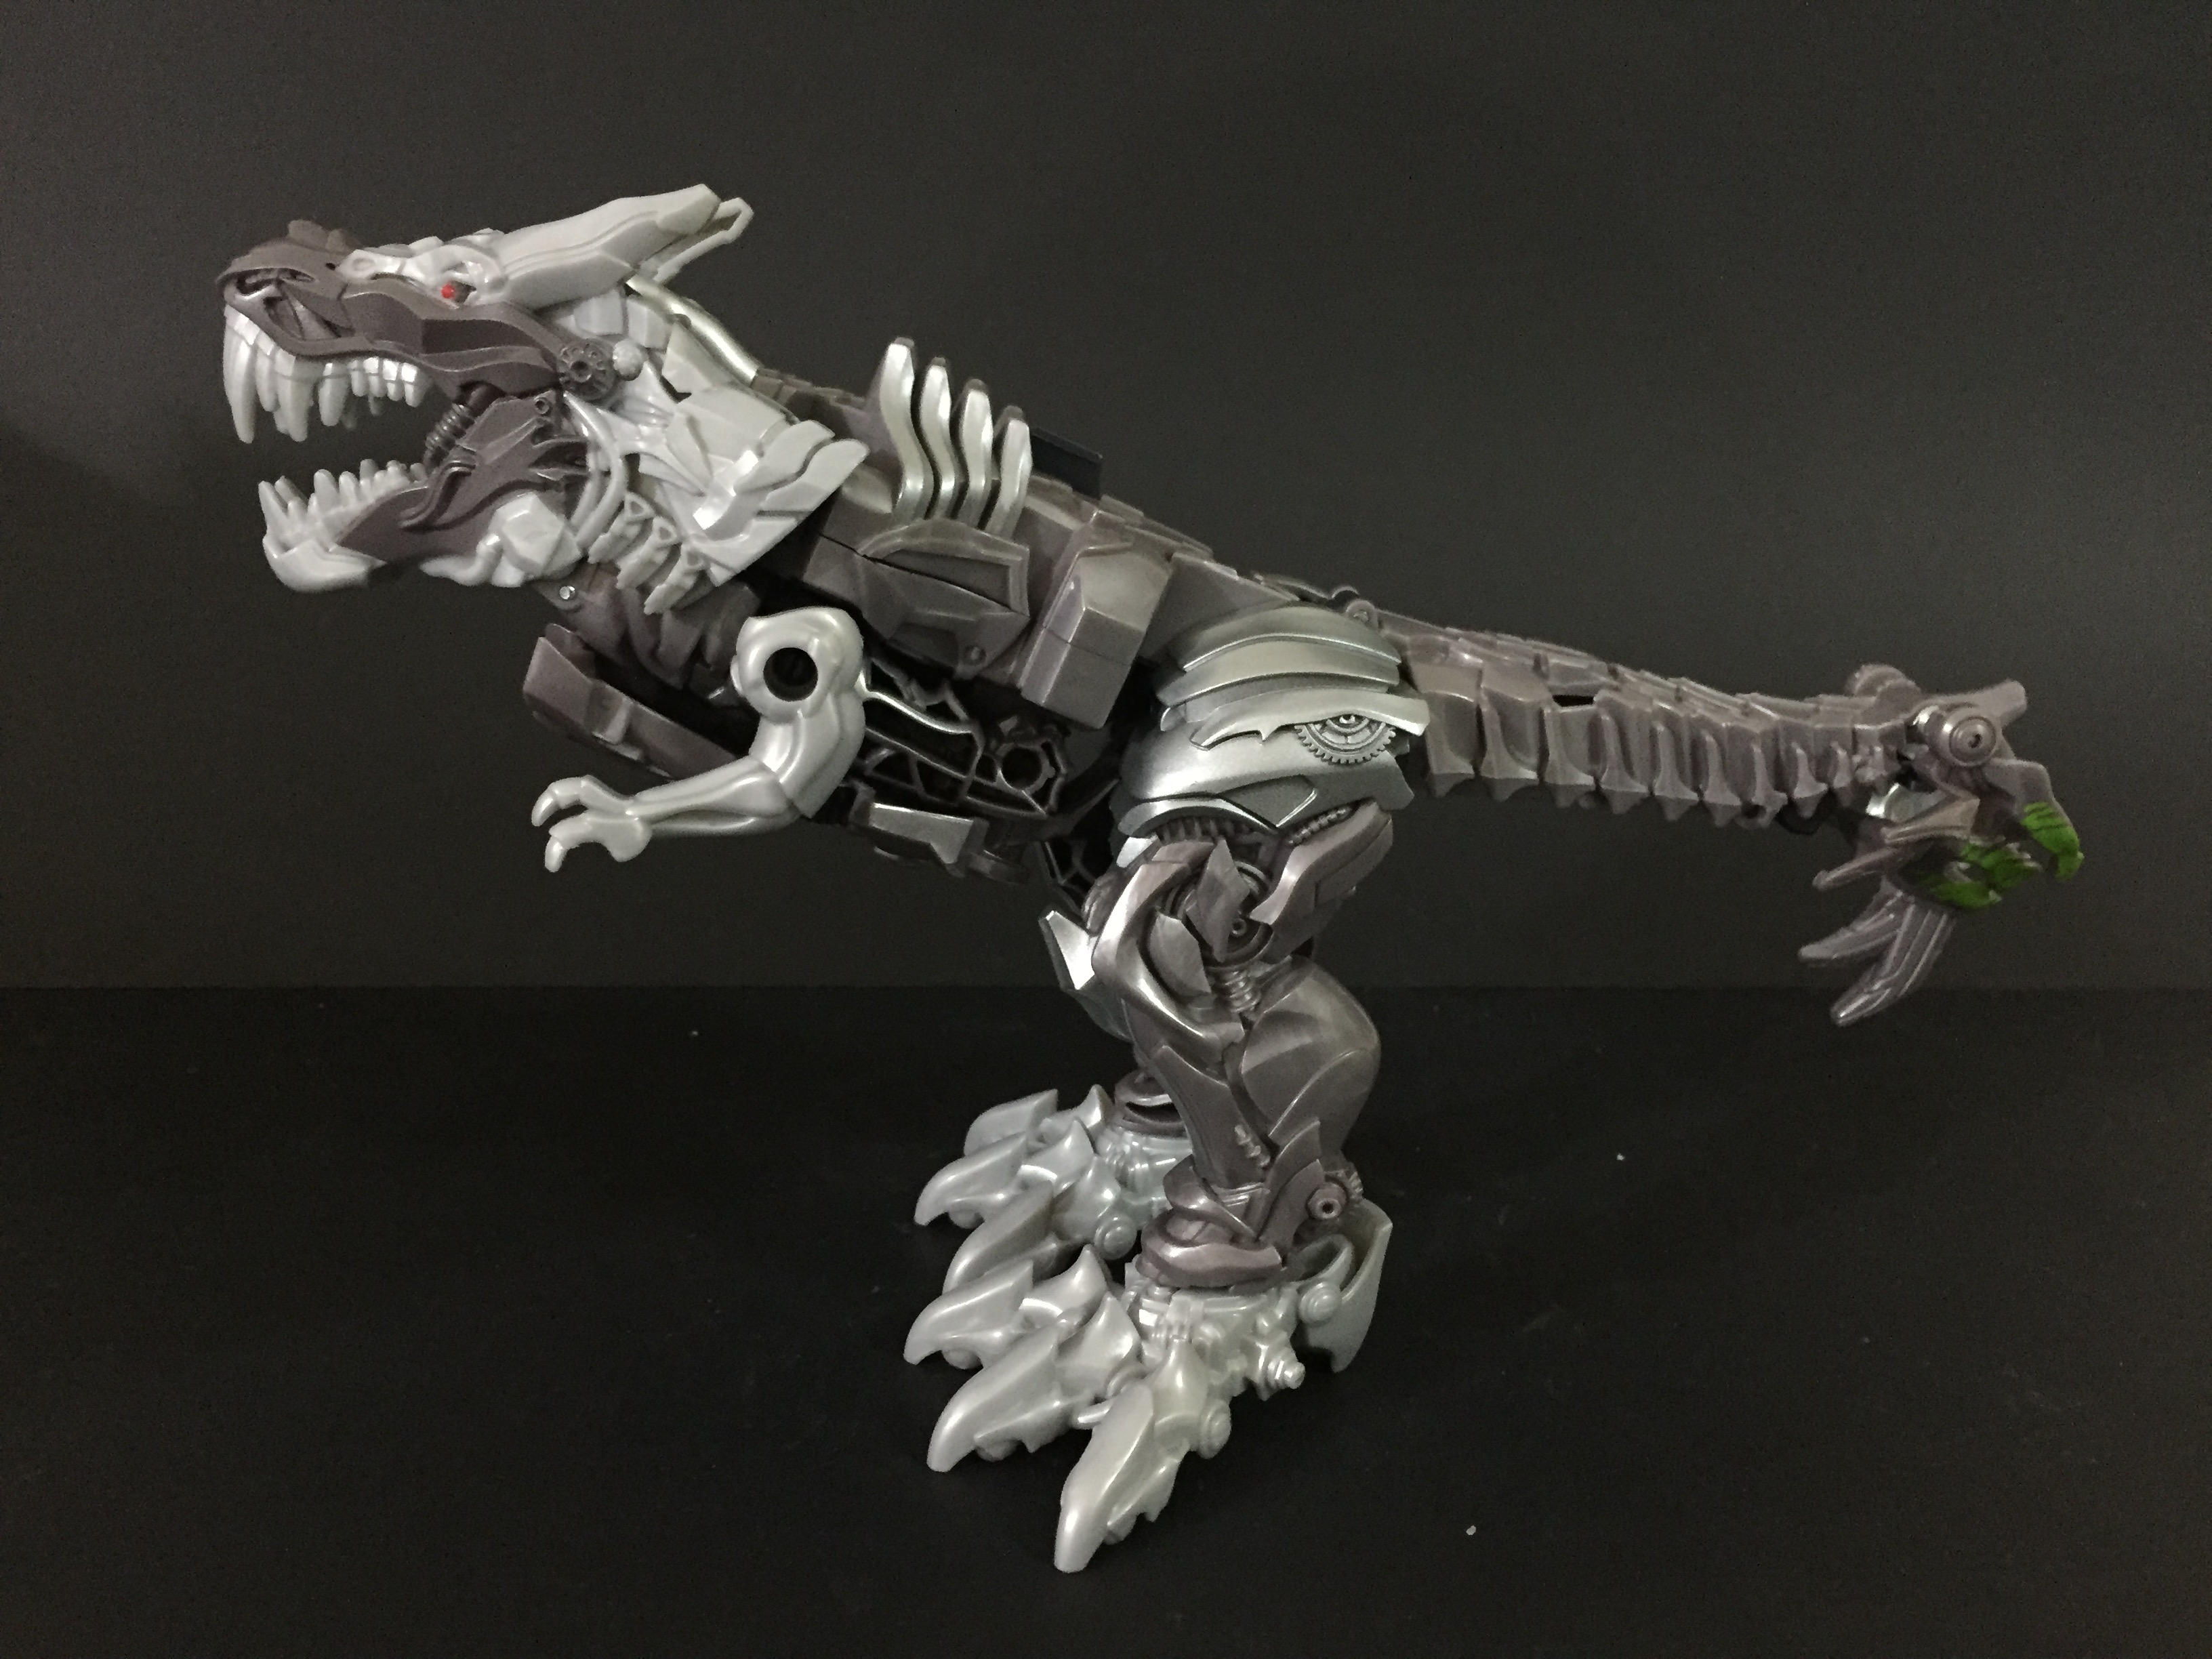 Knight Armor Grimlock. (3-Step Turbo Changer)